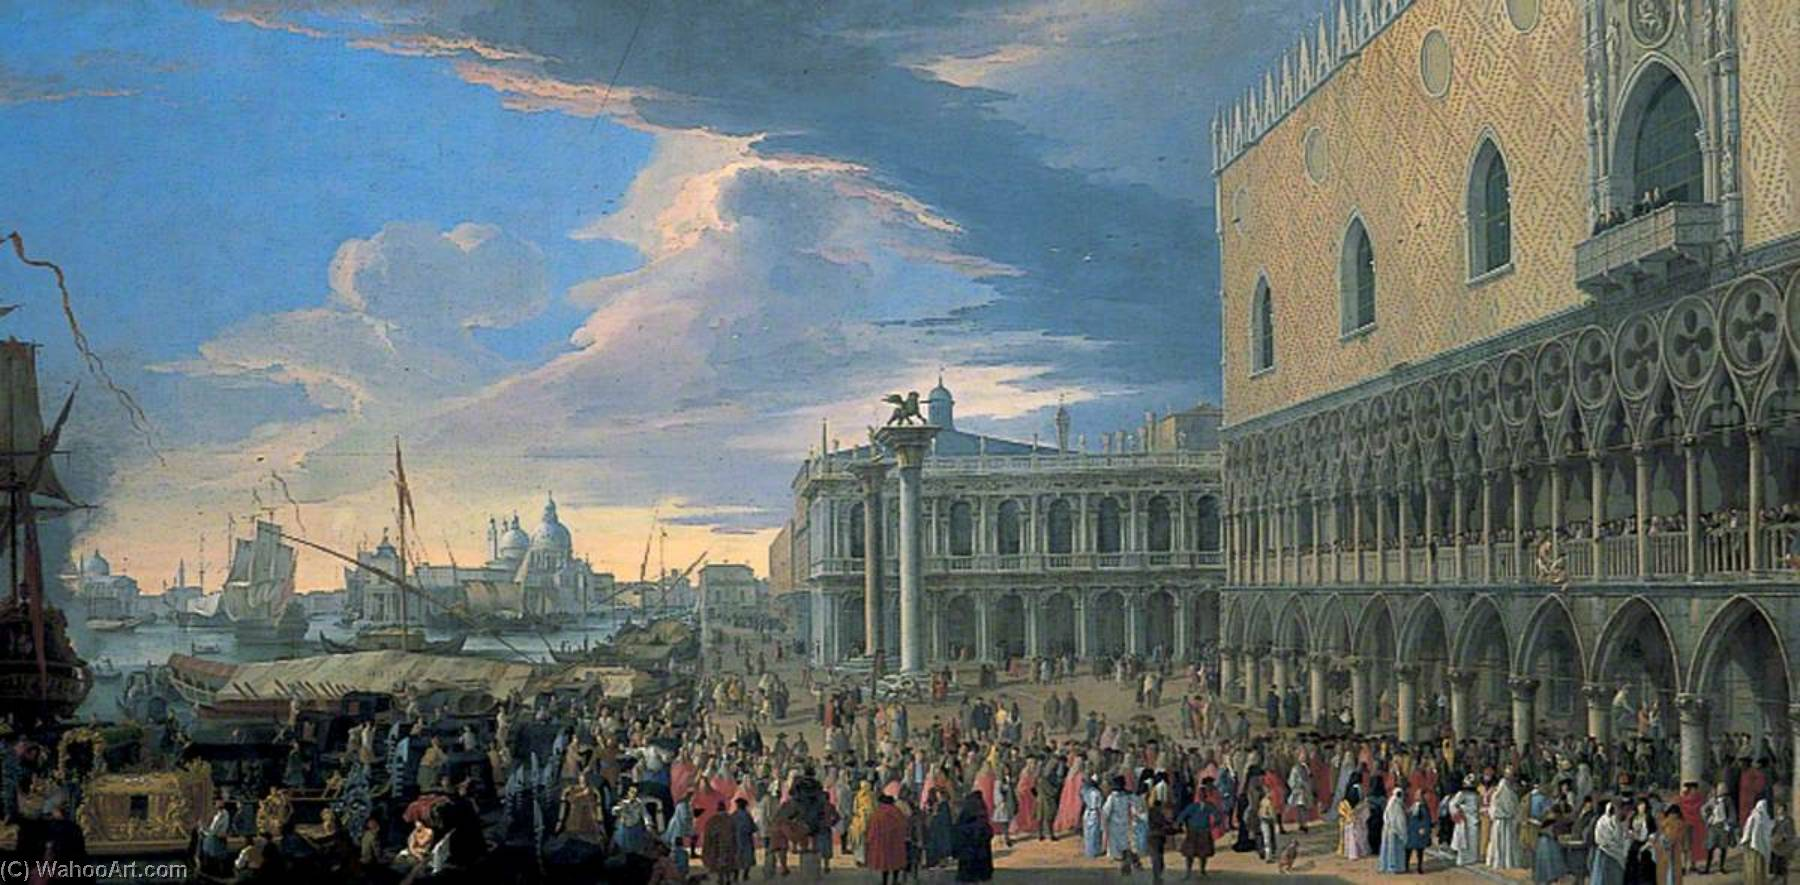 The Arrival of the Earl of Manchester in Venice, 1710 by Luca Carlevaris (1663-1730, Italy) | WahooArt.com